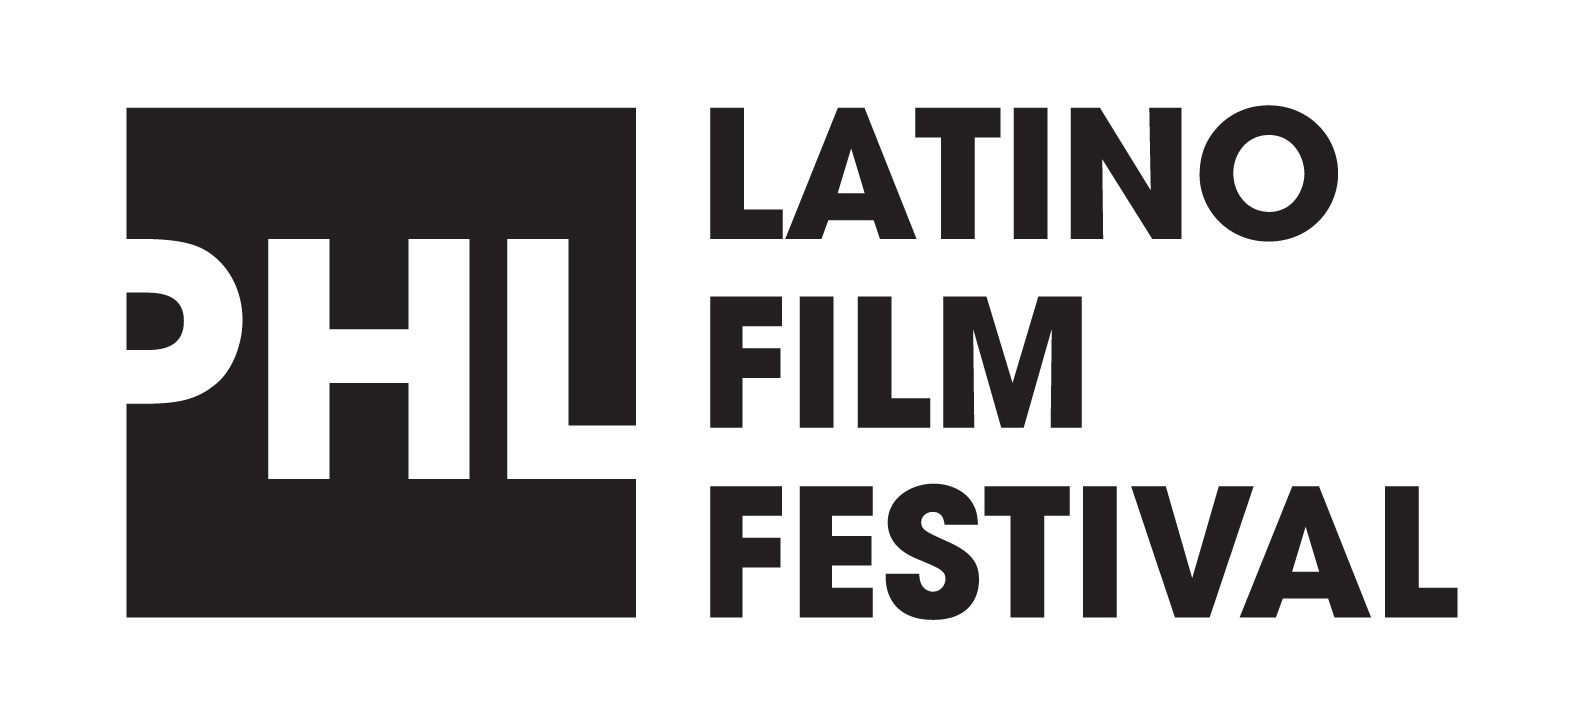 The Philadelphia Latino Film Festiva